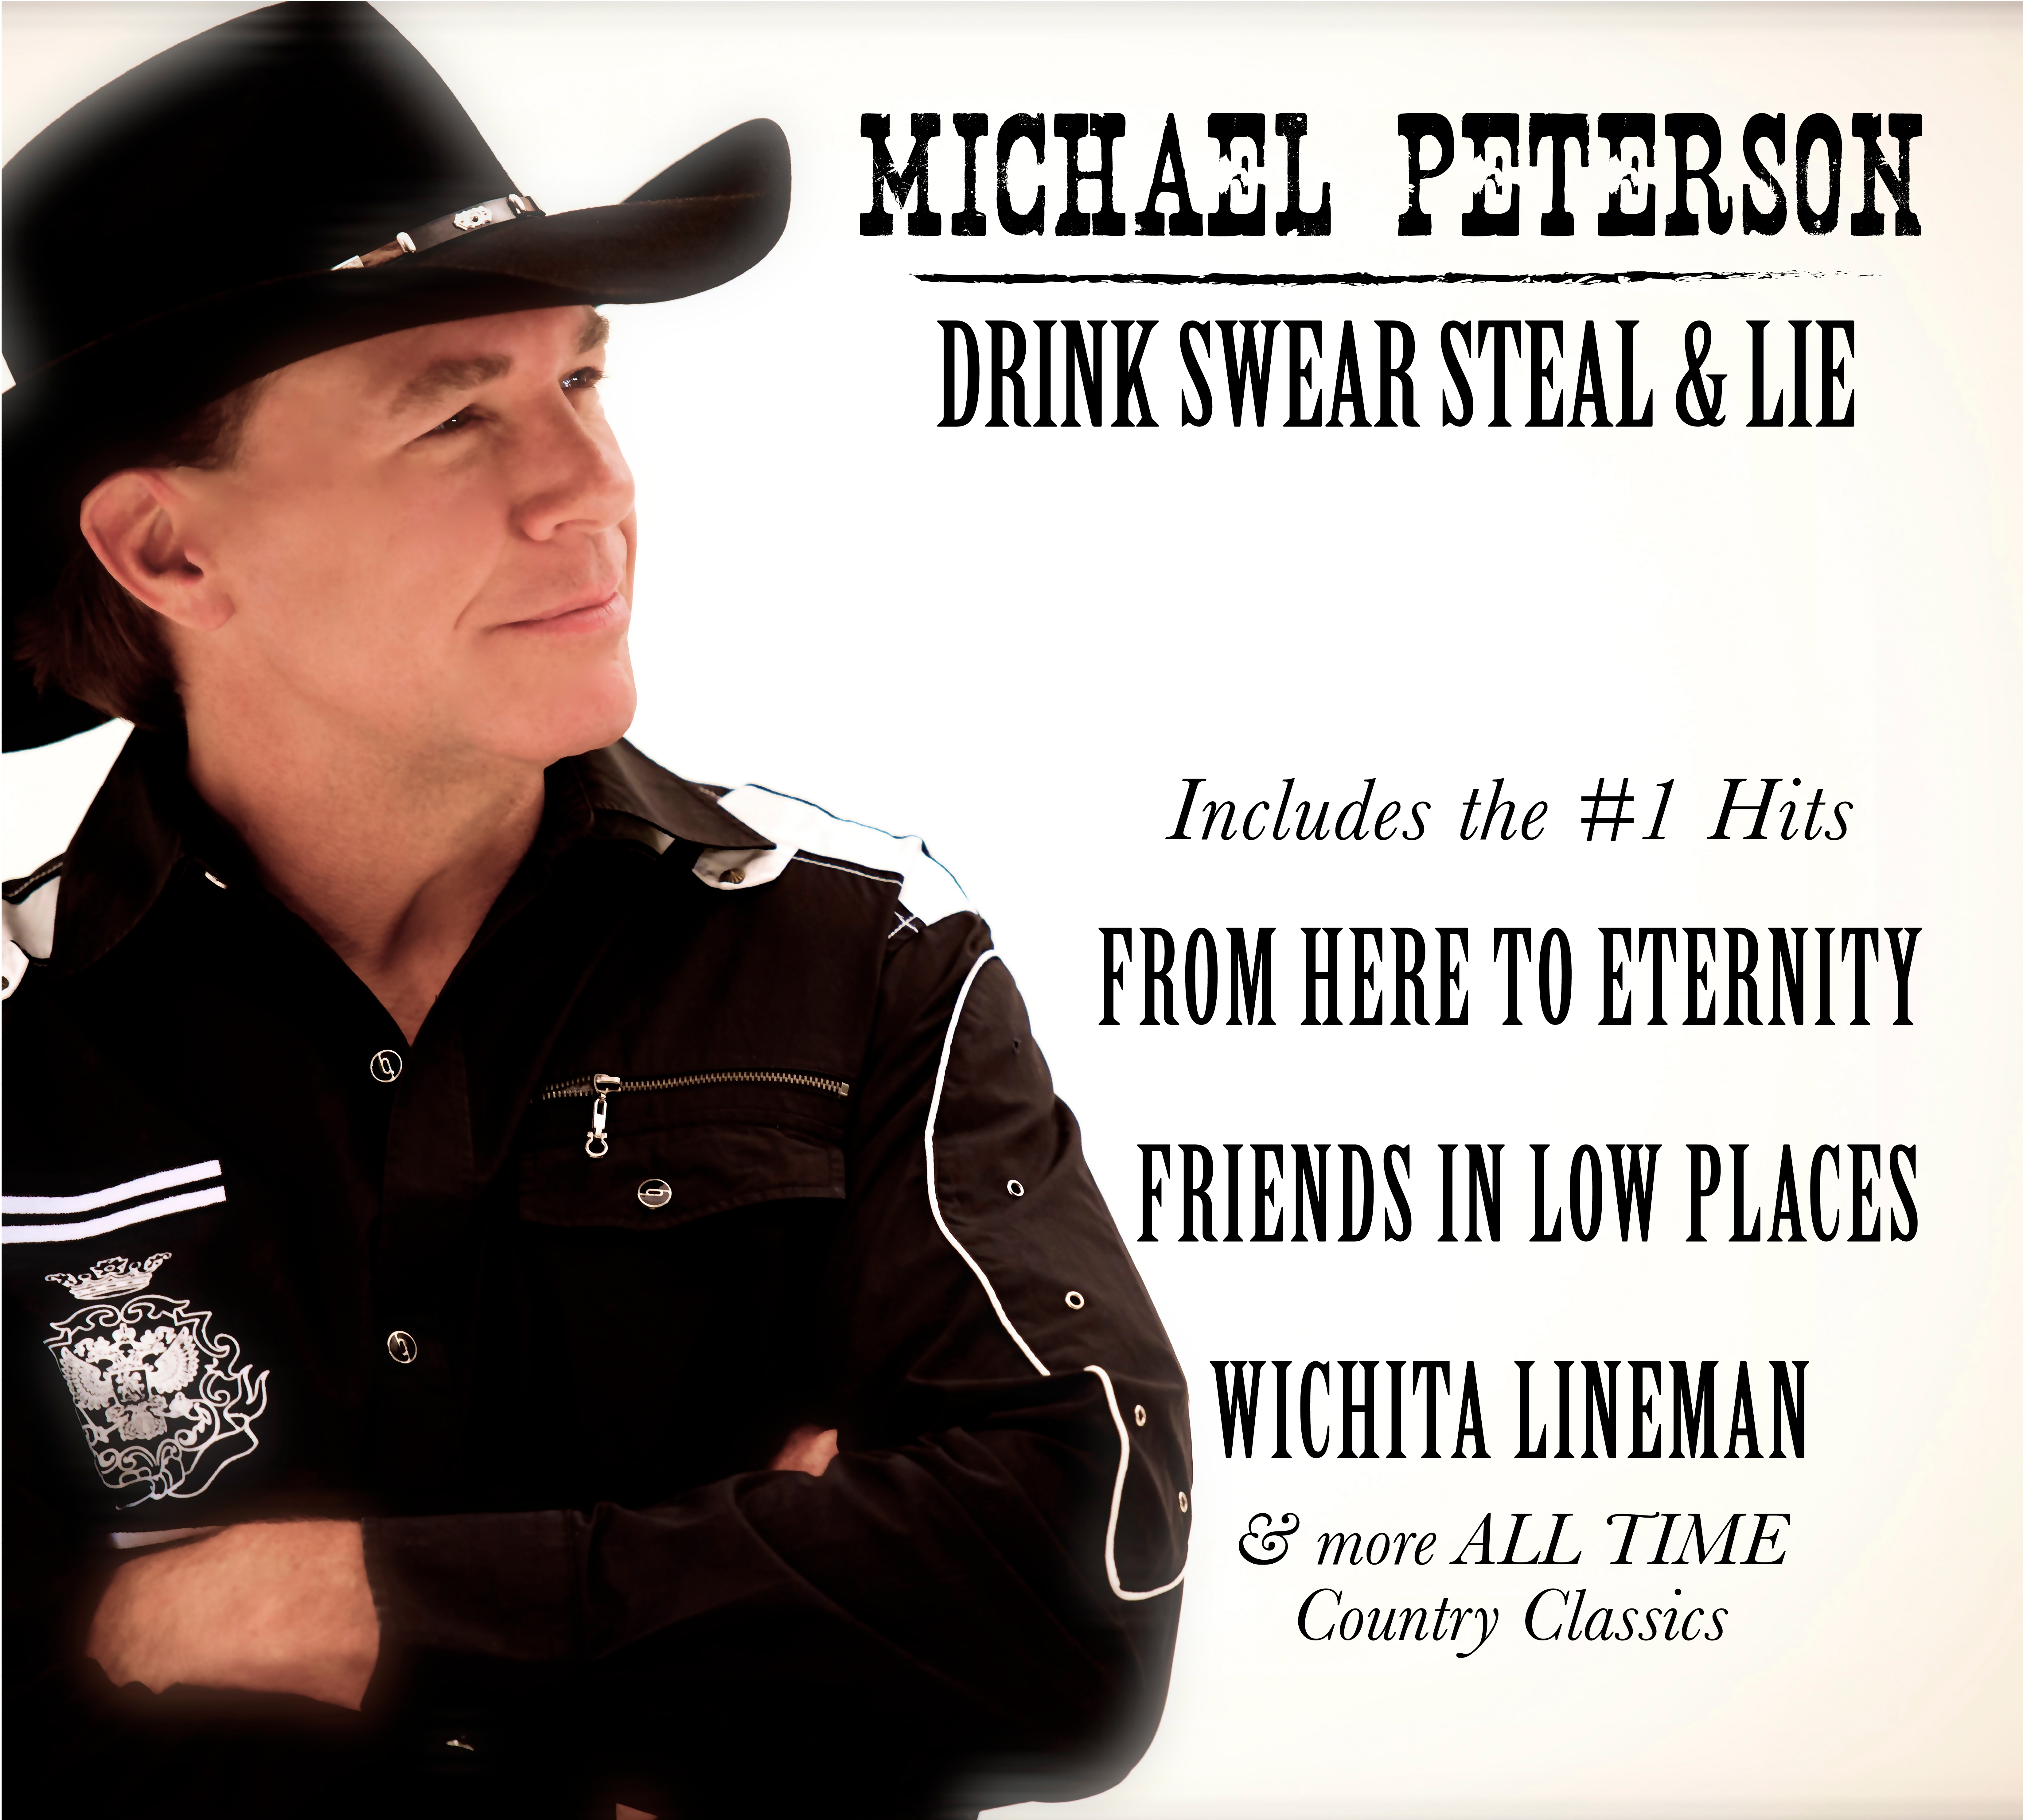 Drink Swear Steal and Lie - Michael Peterson - 37 Records